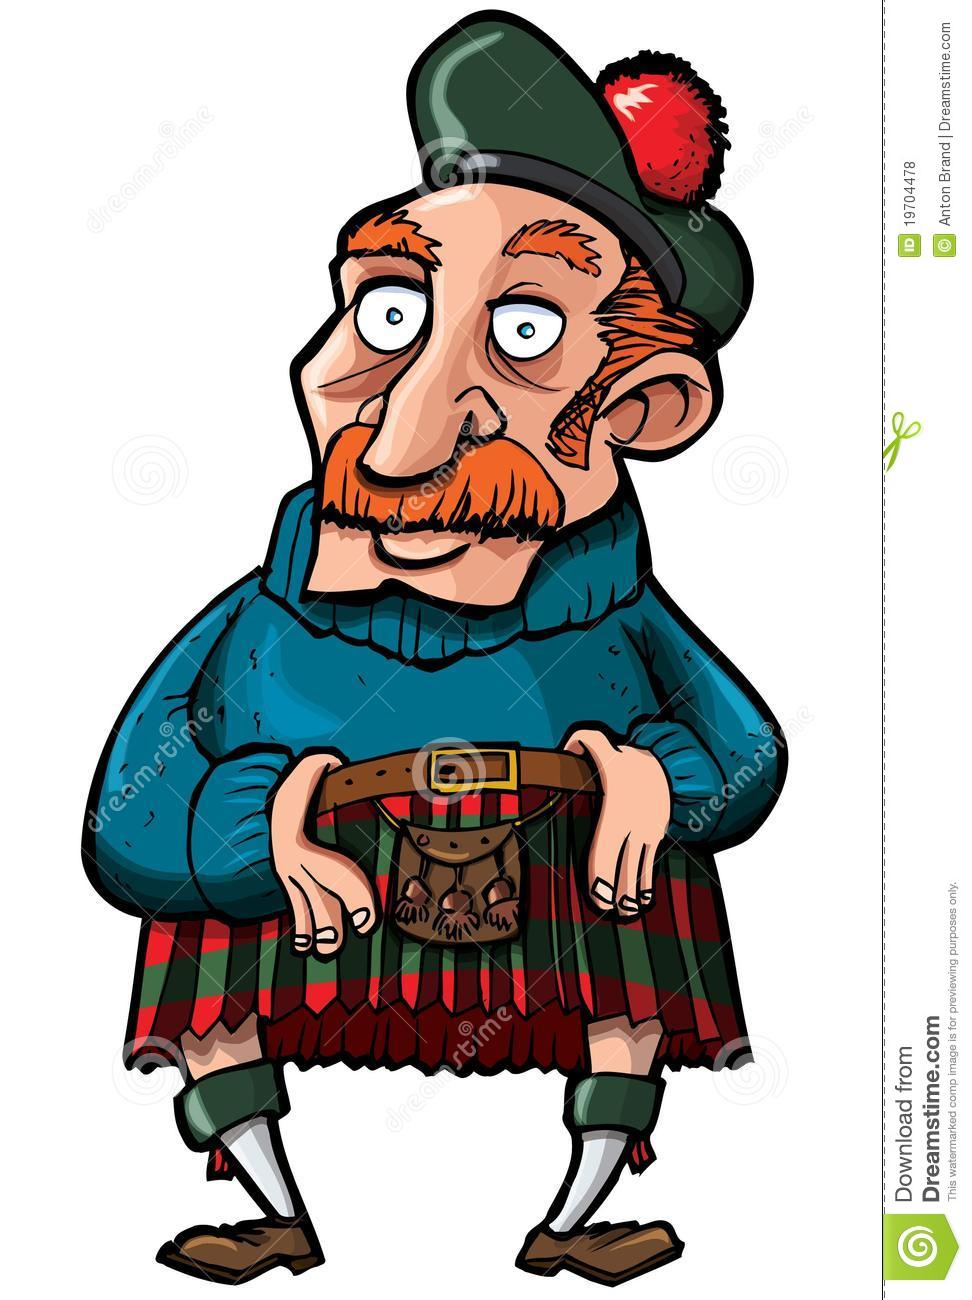 Cartoon Scotsman With A Kilt And Sporran Stock Vector - Illustration of  plaid, fashion: 19704478